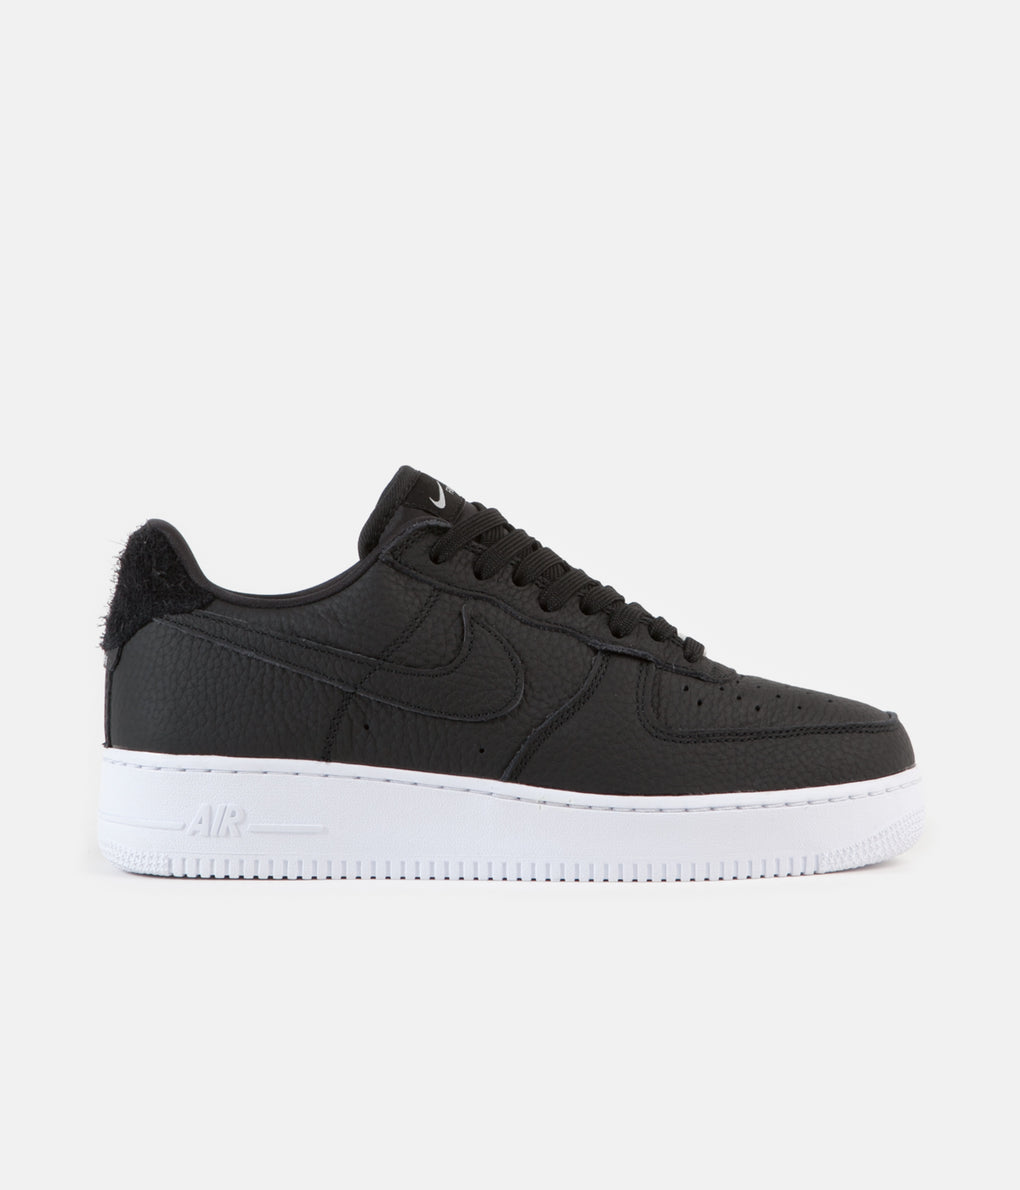 Nike Air Force 1 '07 Craft Shoes - Black / Black - White - Vast Grey